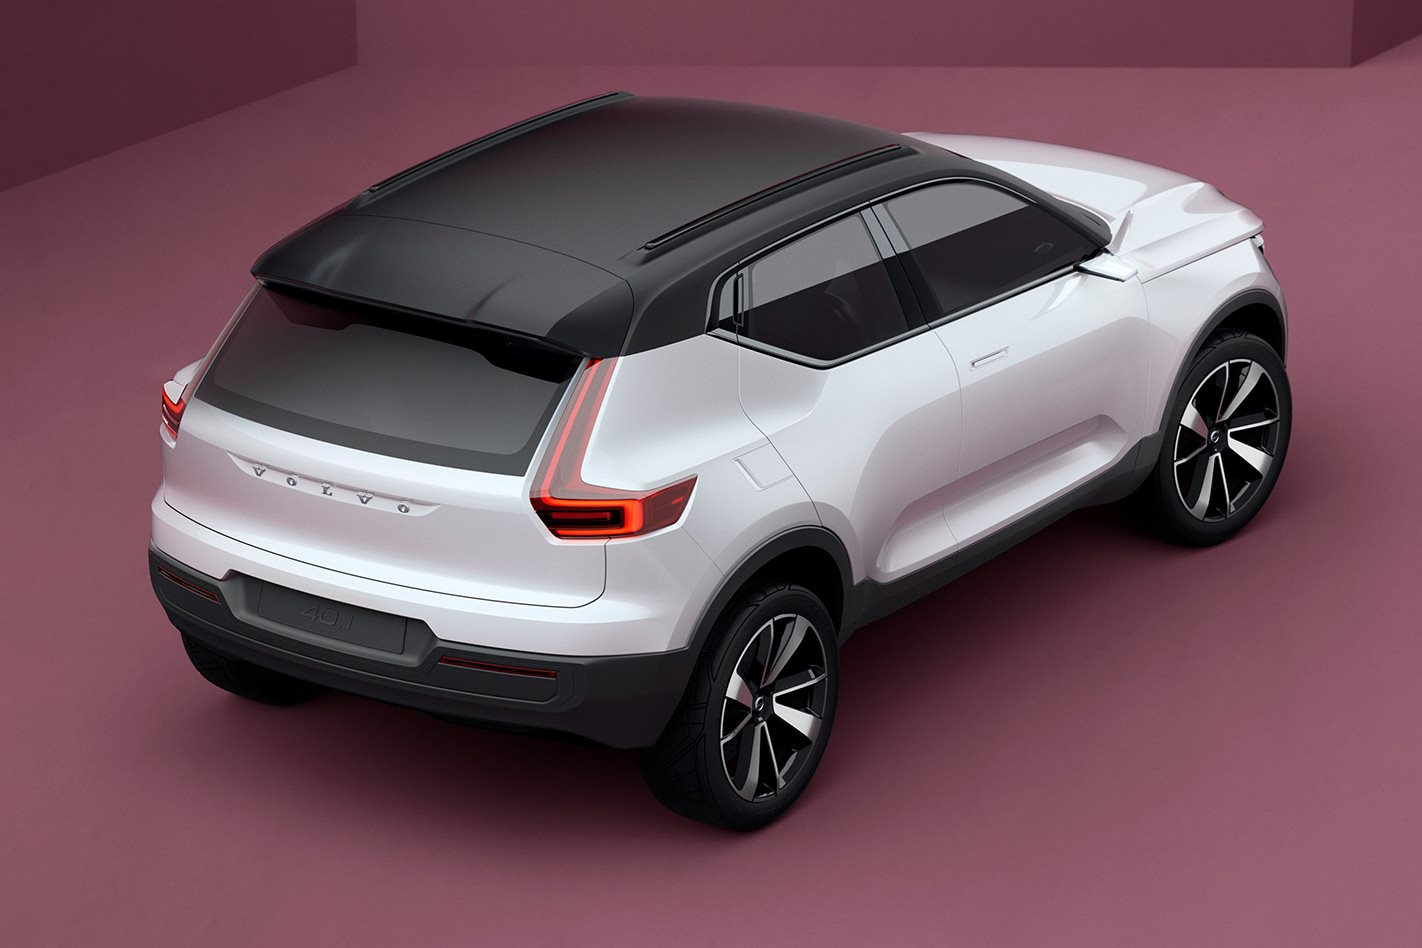 volvo xc40 suv and 40 series sedan previewed by concepts. Black Bedroom Furniture Sets. Home Design Ideas